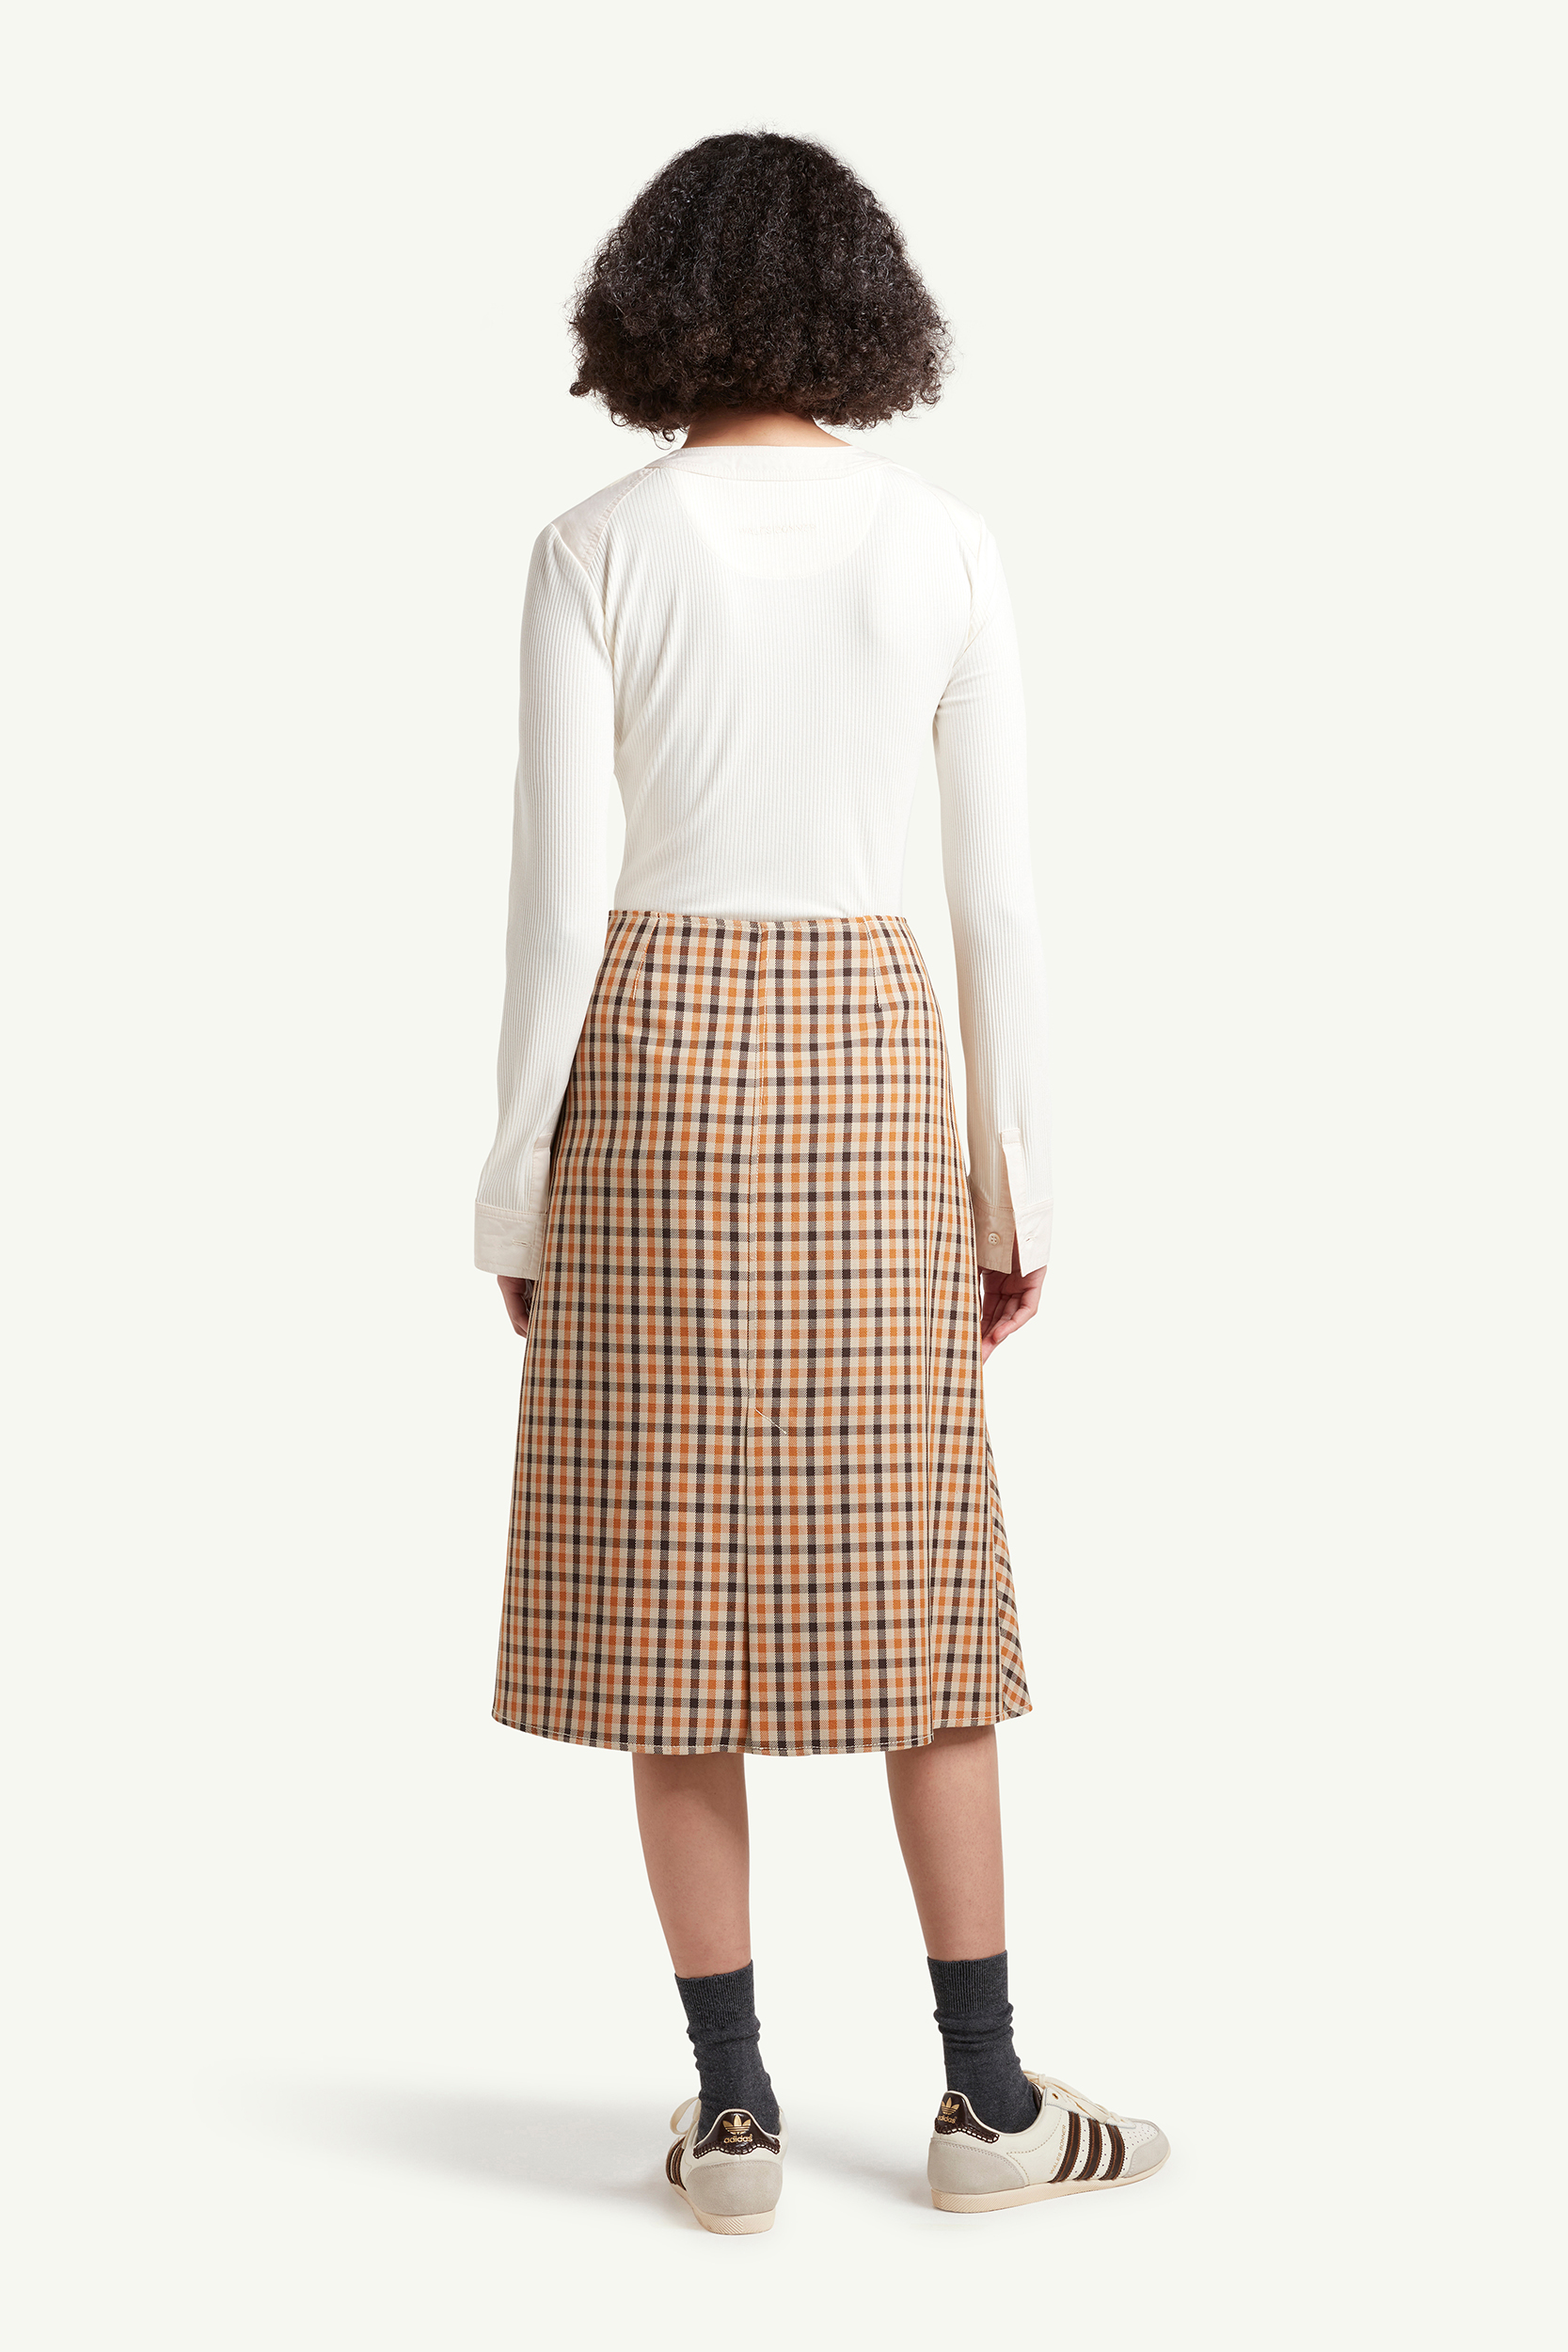 back shot of Womenswear Model wearing light brown checkered skirt with white top